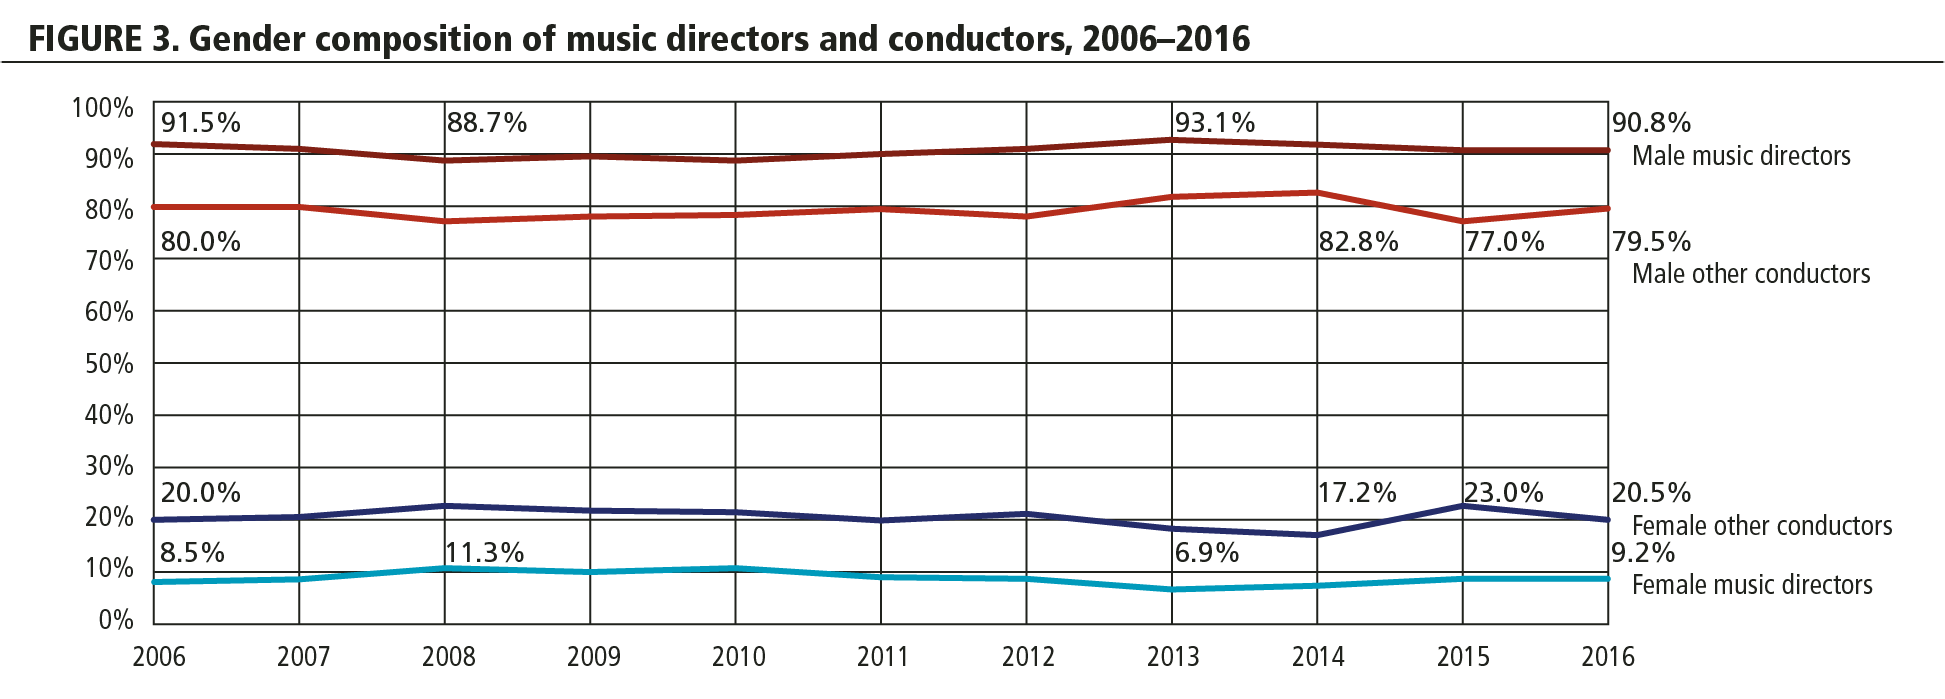 FIGURE 3. Gender composition of music directors and conductors, 2006-2016